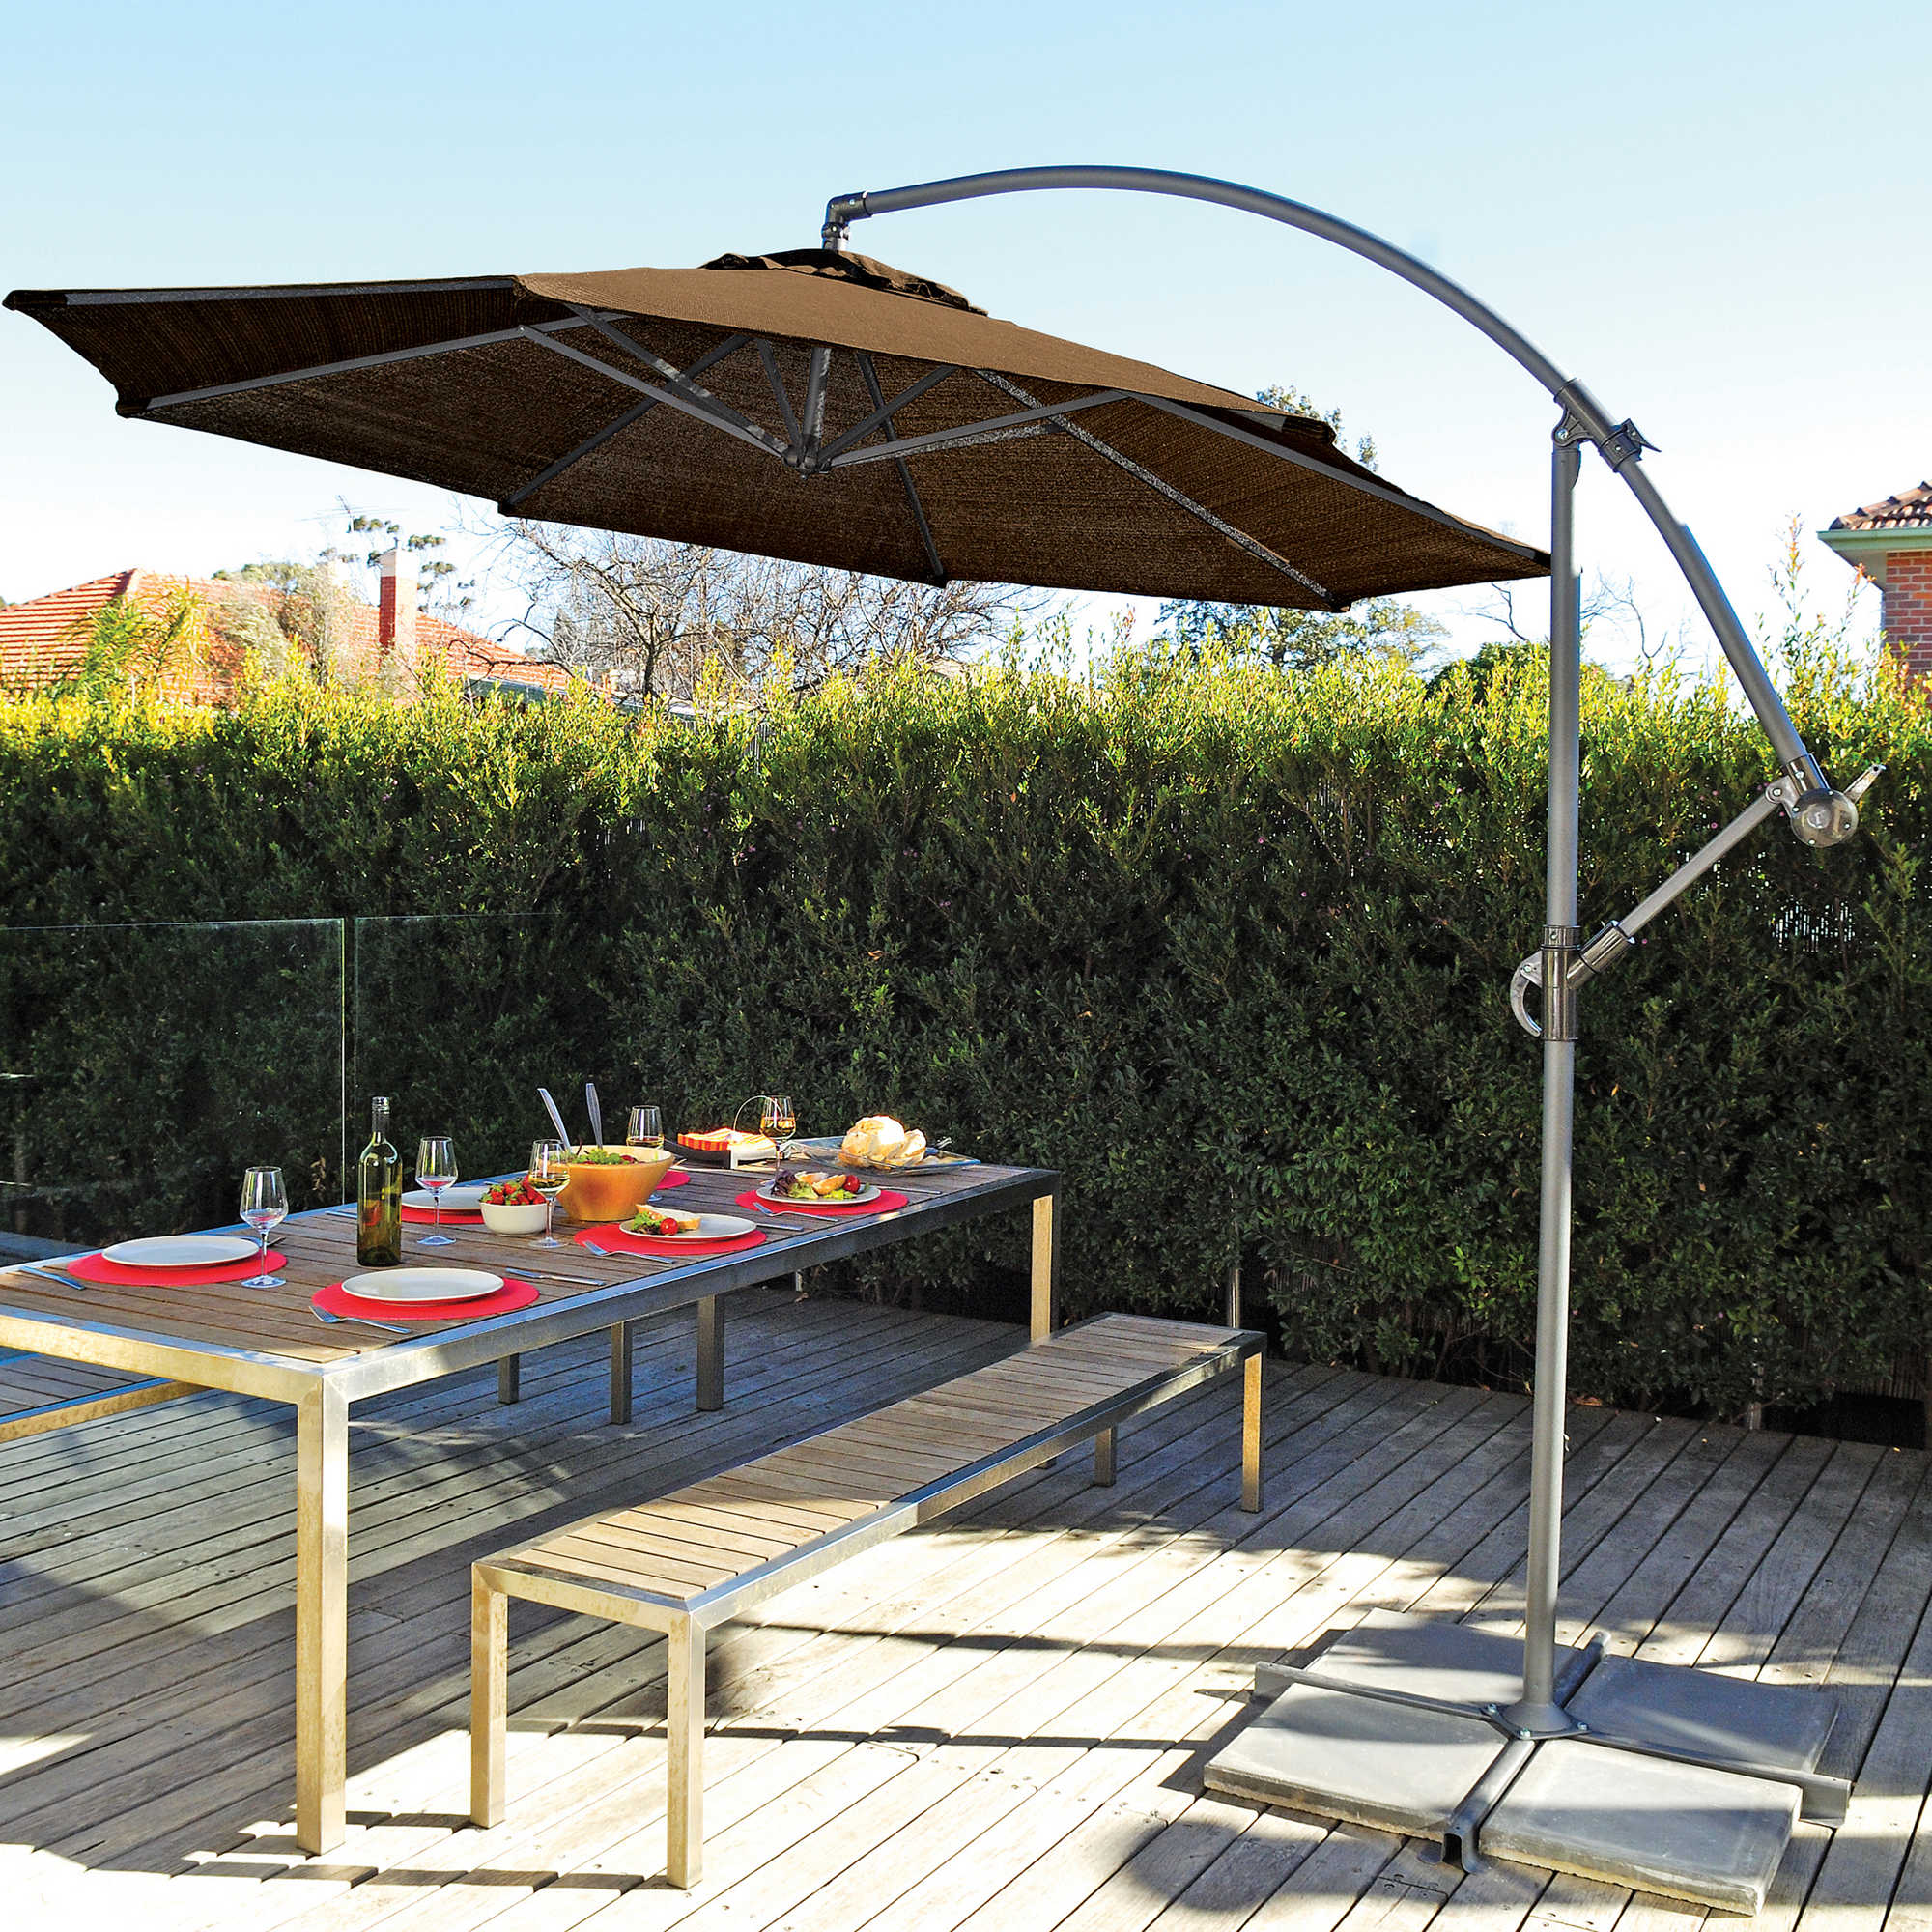 benestuff ideas fset inspirational umbrella of offset patio umbrellas top